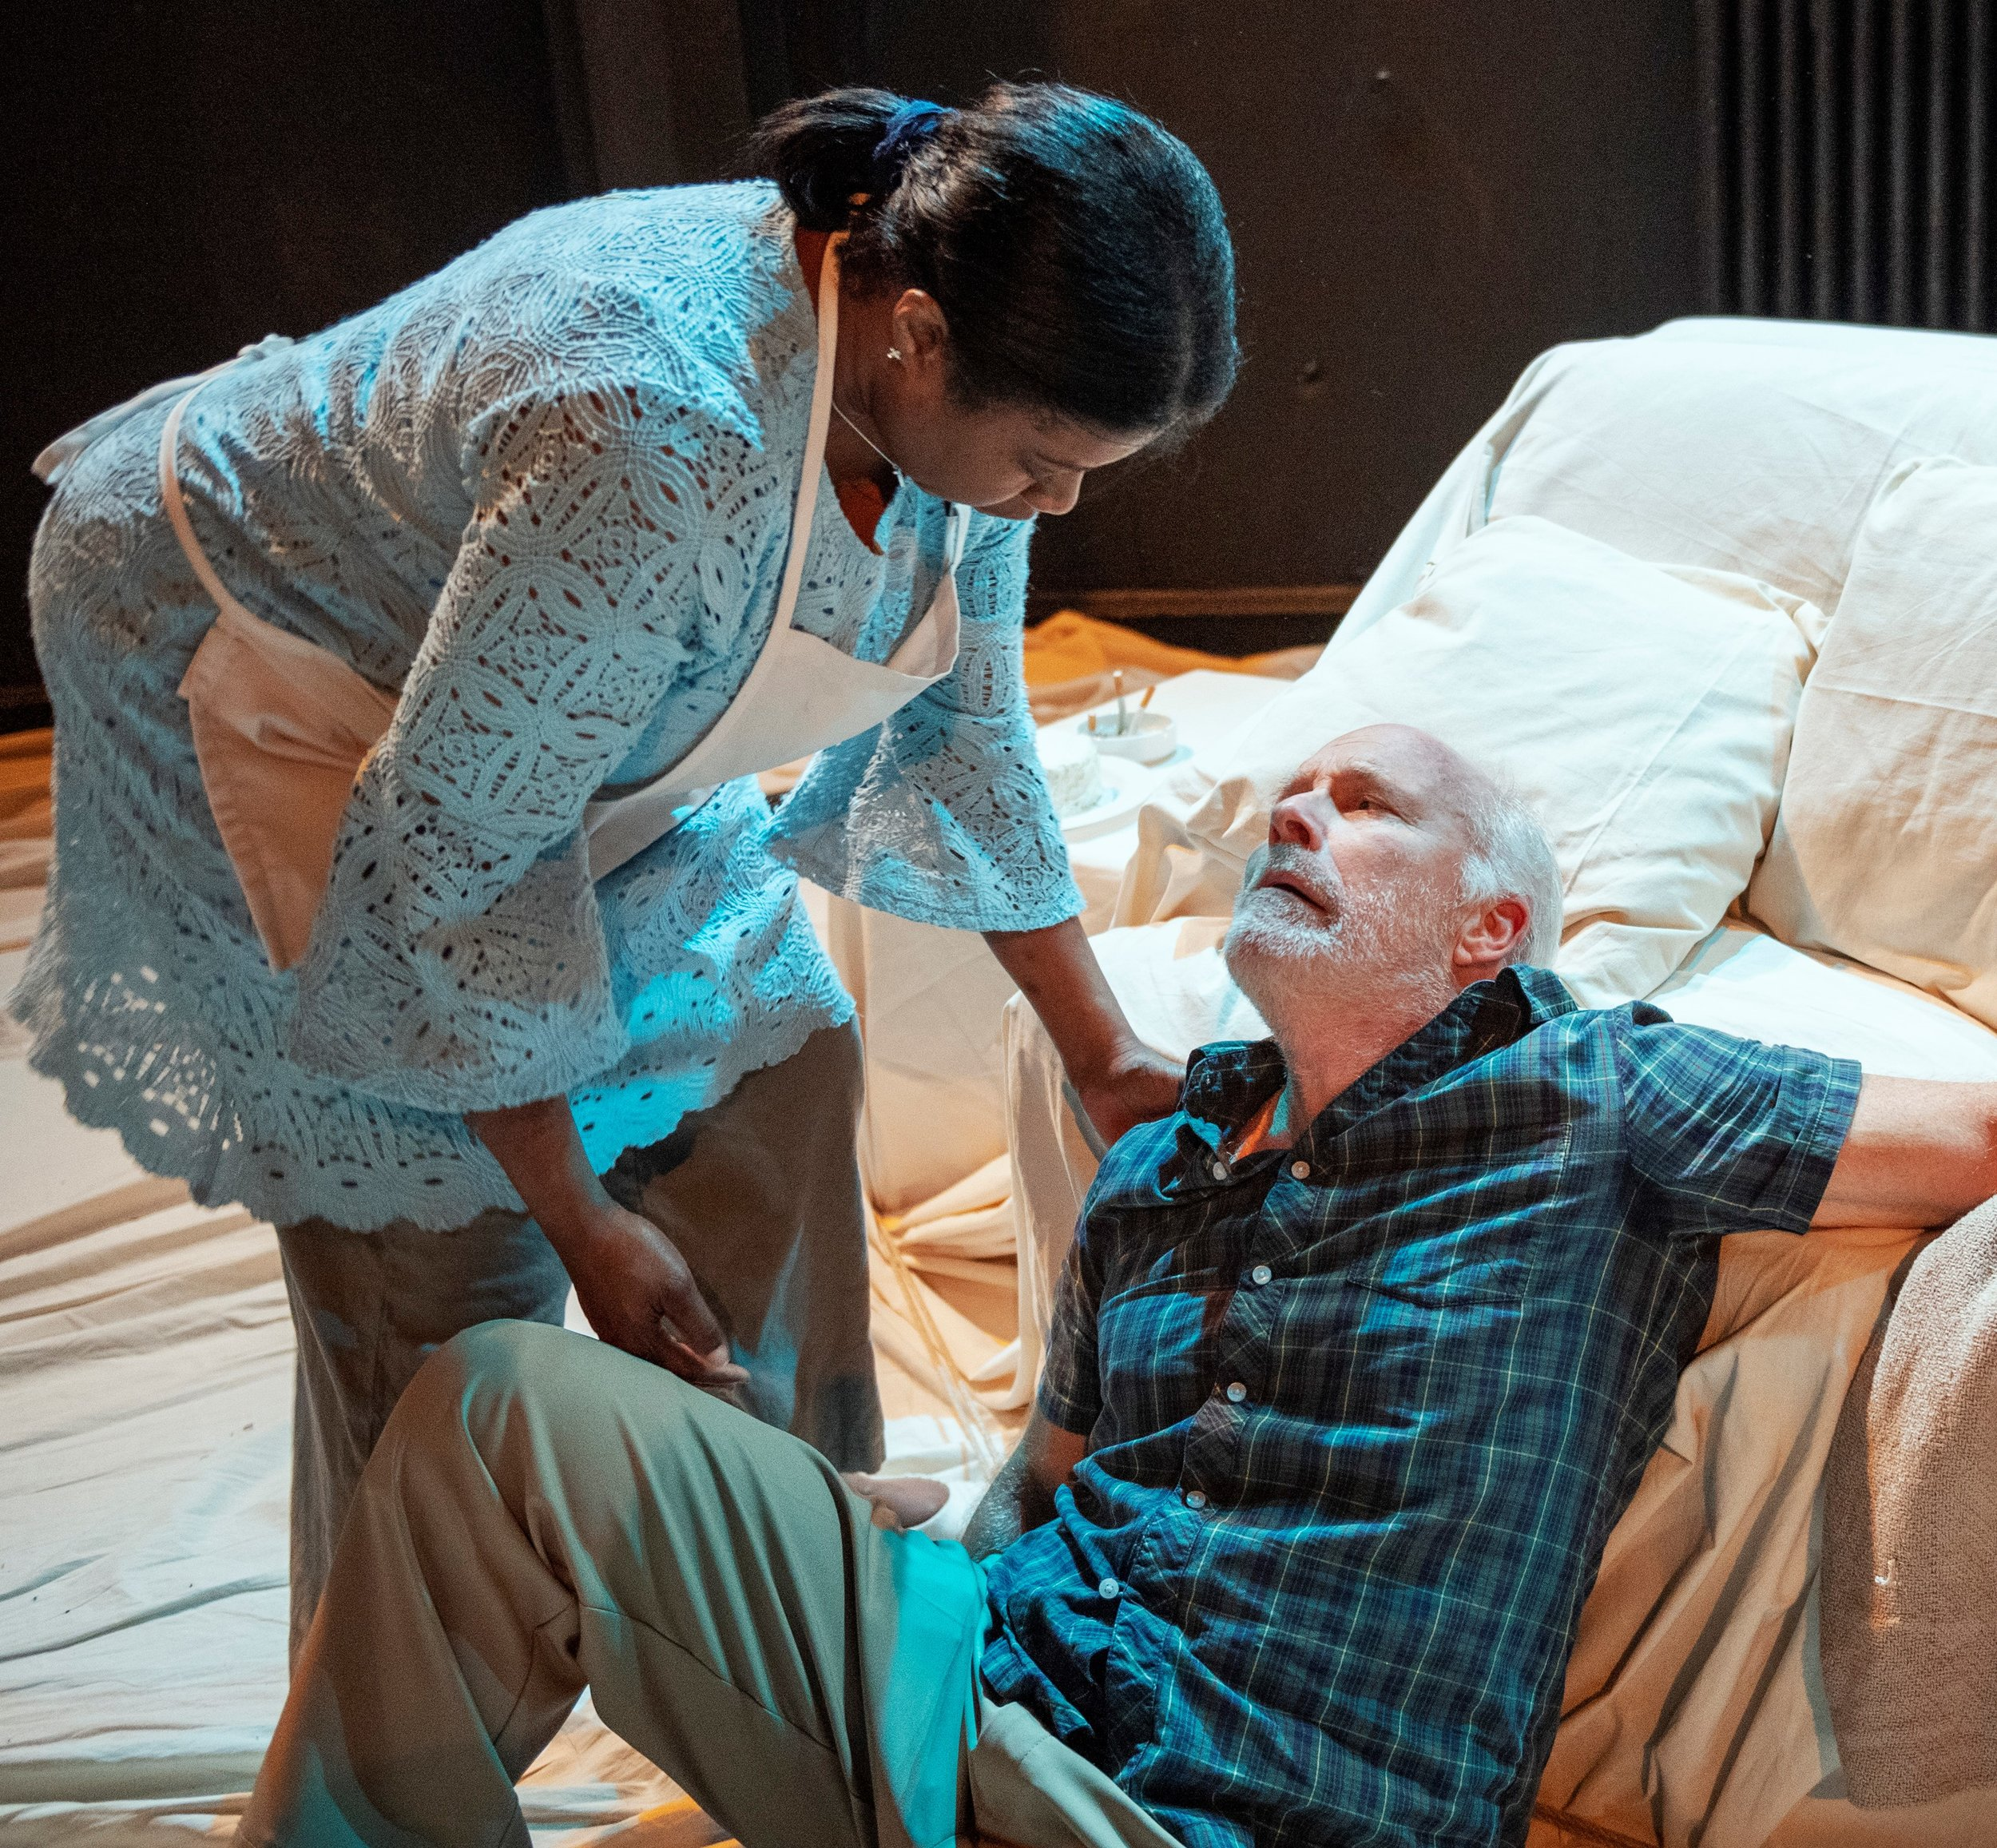 Janet (Abrams) nurses a stricken Bob (Butler). Photographs by Deen van Meer.